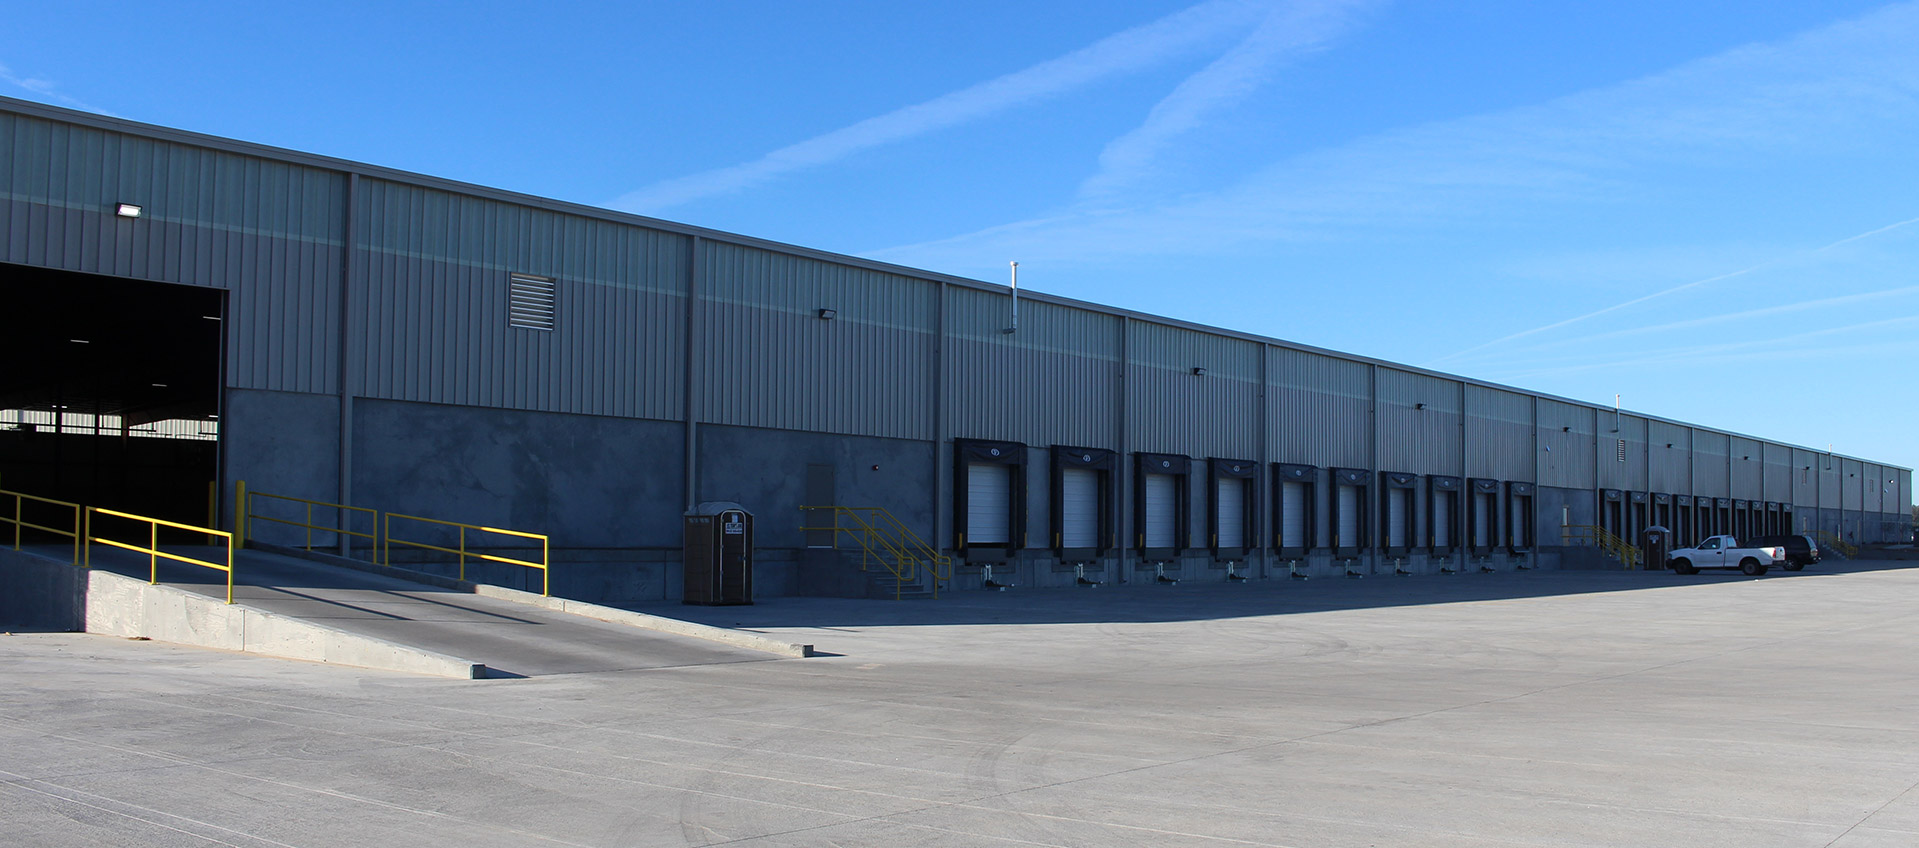 WDS completes relocation into larger warehousing